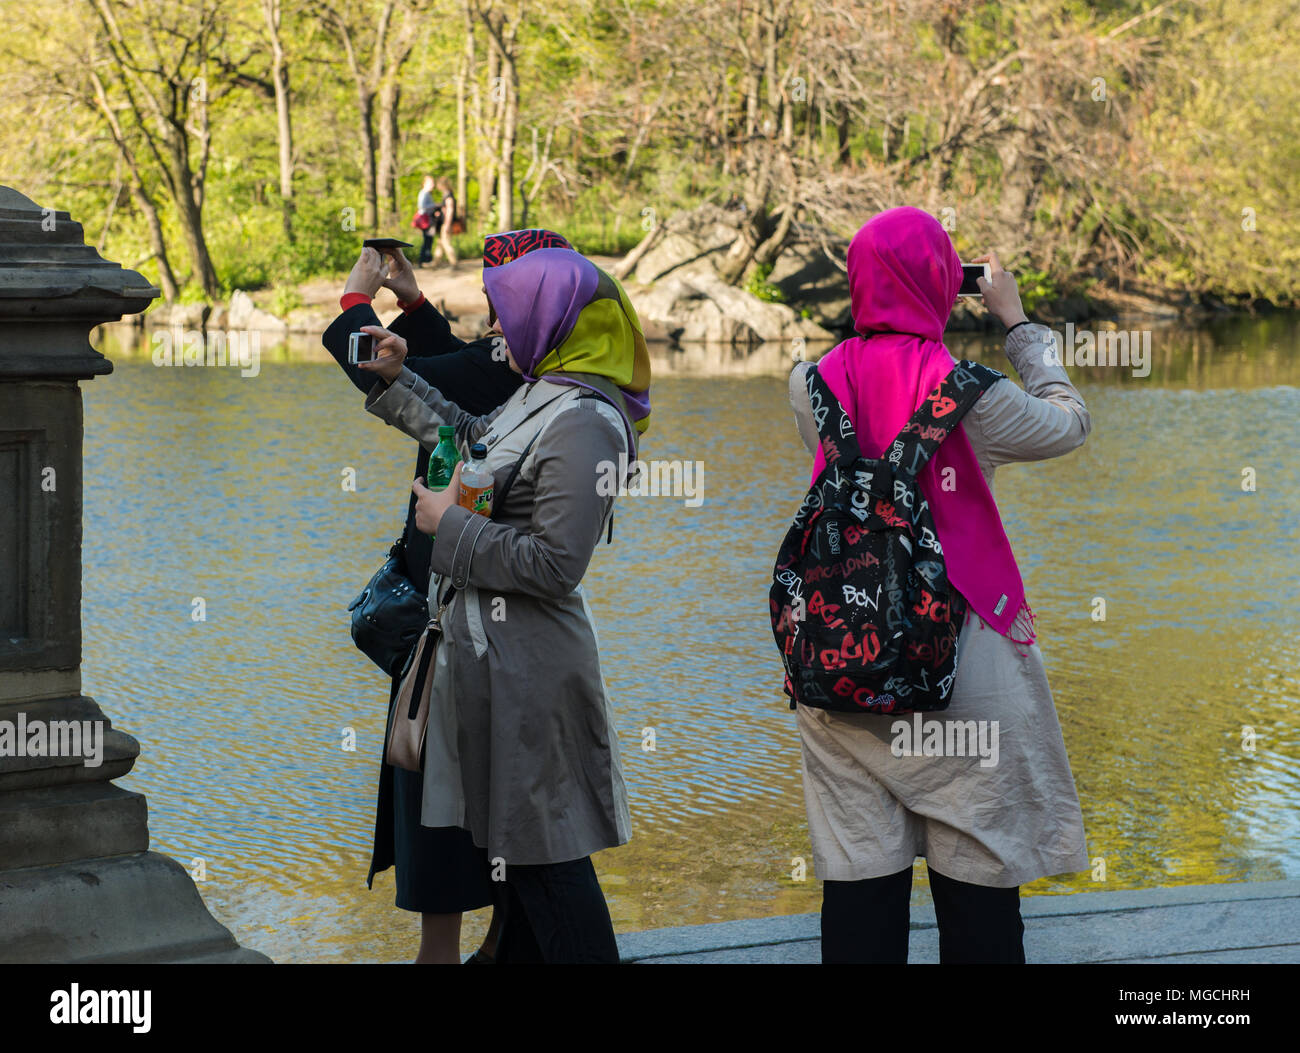 Three women, wearing colourful headscarves, taking photographs in Central Park, New York City, USA - Stock Image